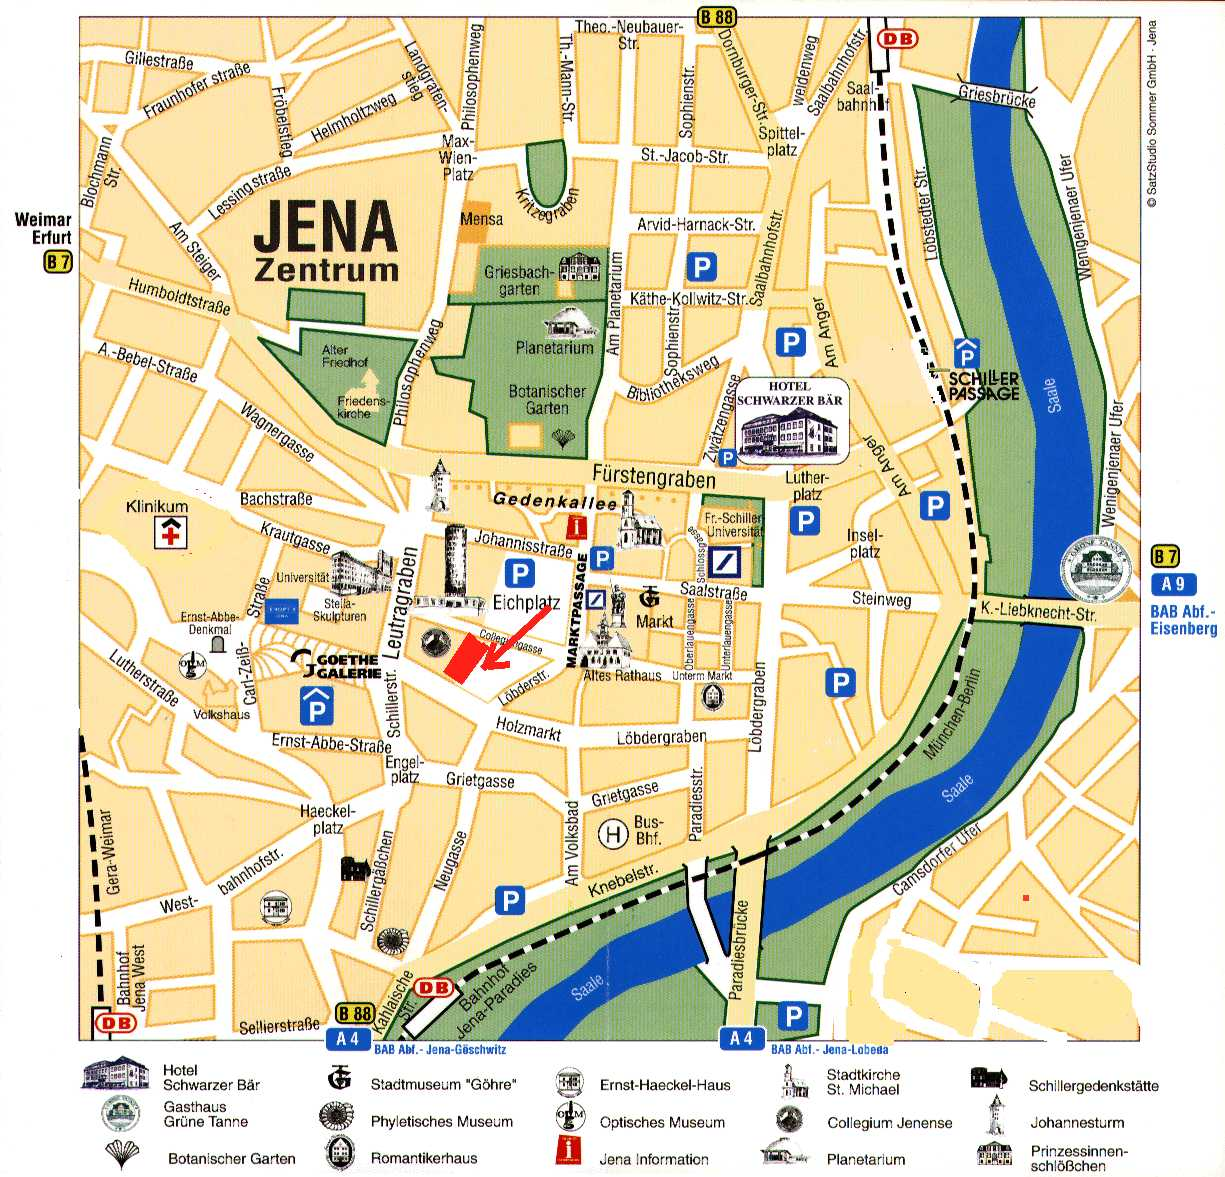 Map Of Cities In Germany.Guide To Bach Tour Jena City Map